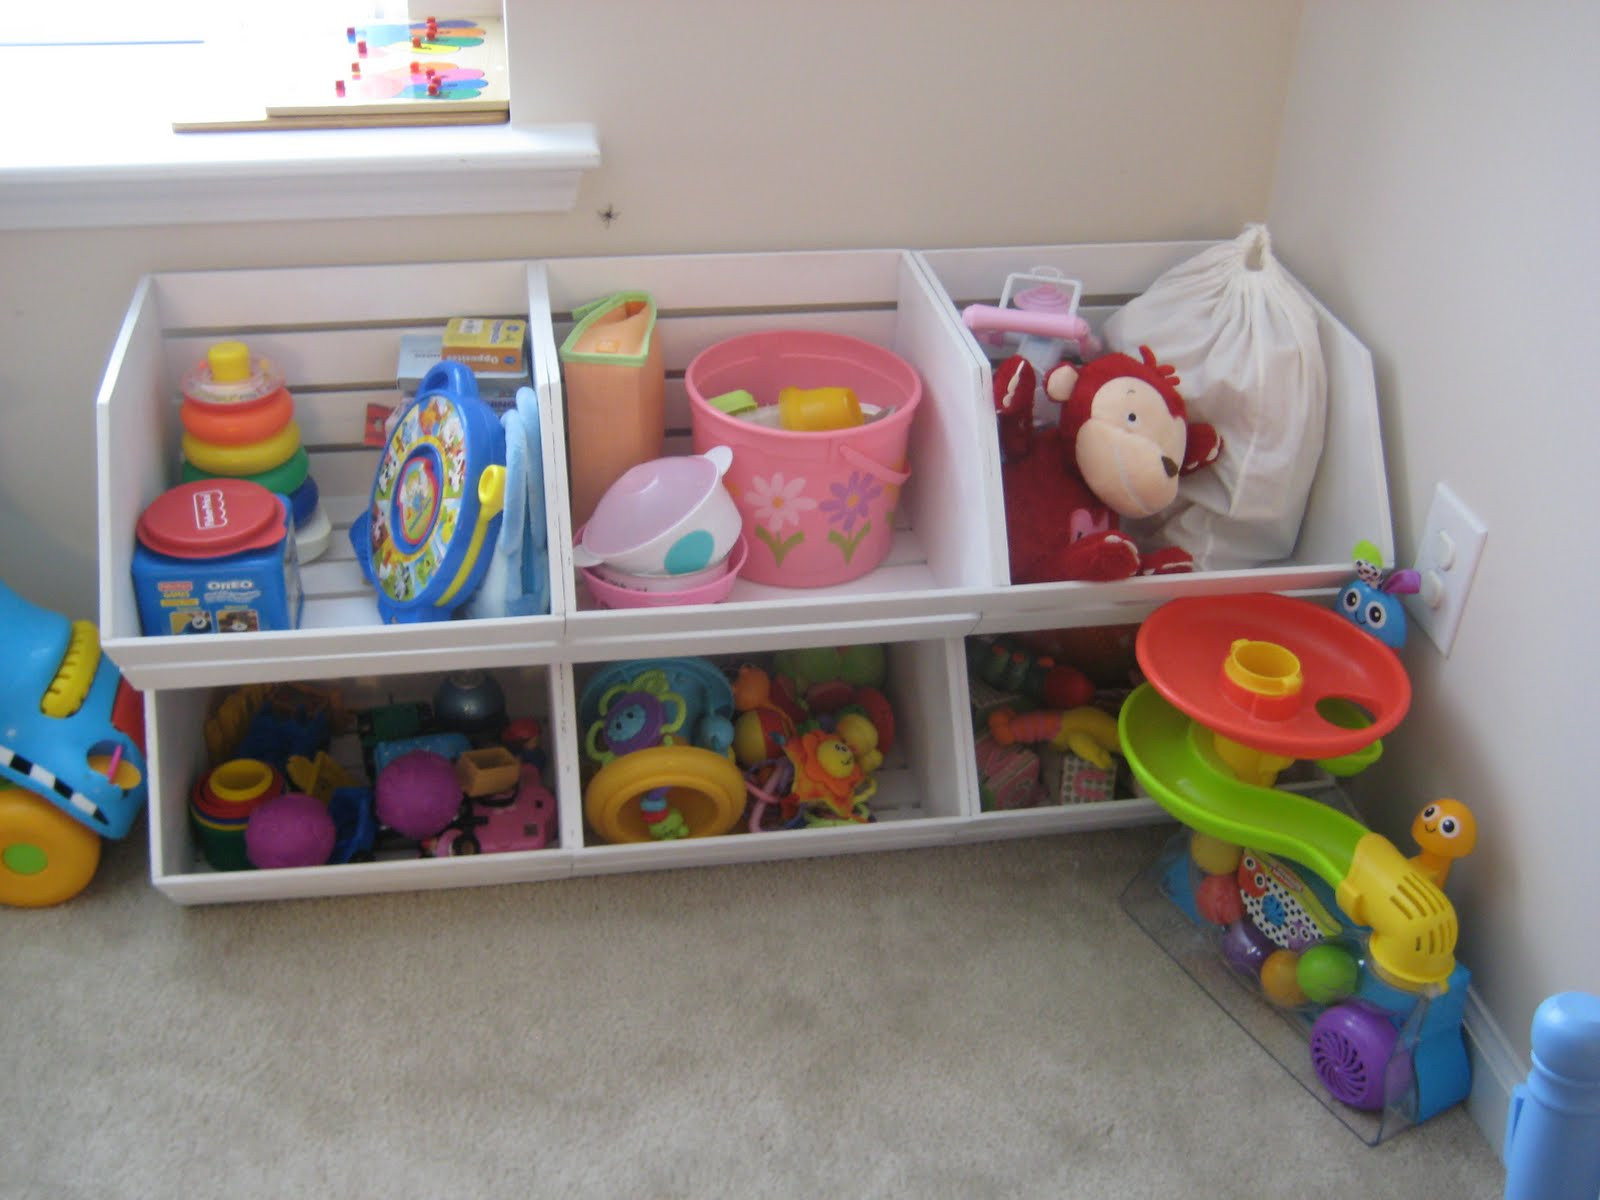 Best ideas about DIY Kids Toys . Save or Pin leaf and letter handmade pottery barn kids esque toy storage Now.